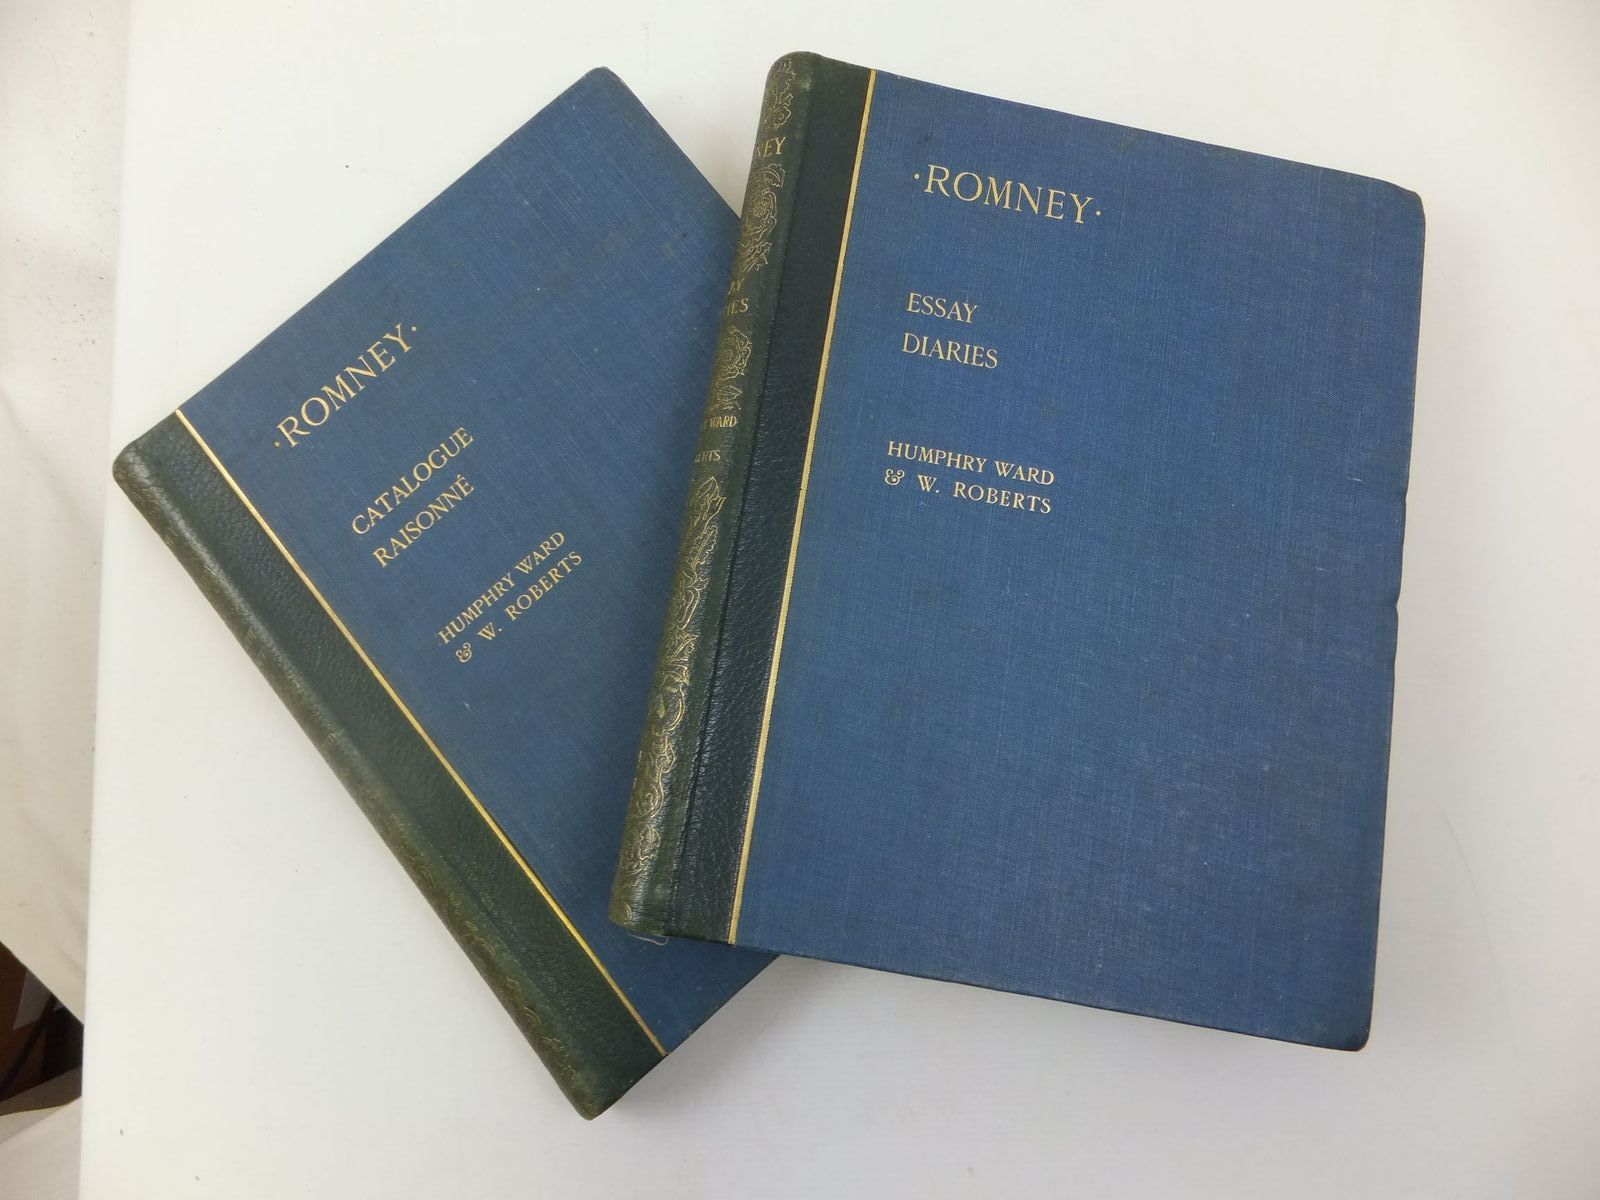 Photo of ROMNEY A BIOGRAPHICAL AND CRITICAL ESSAY  WITH A CATALOGUE RAISONNE OF HIS WORKS (2 VOLUMES) written by Ward, Humphrey<br />Roberts, W. published by Thos. Agnew & Sons (STOCK CODE: 2111890)  for sale by Stella & Rose's Books